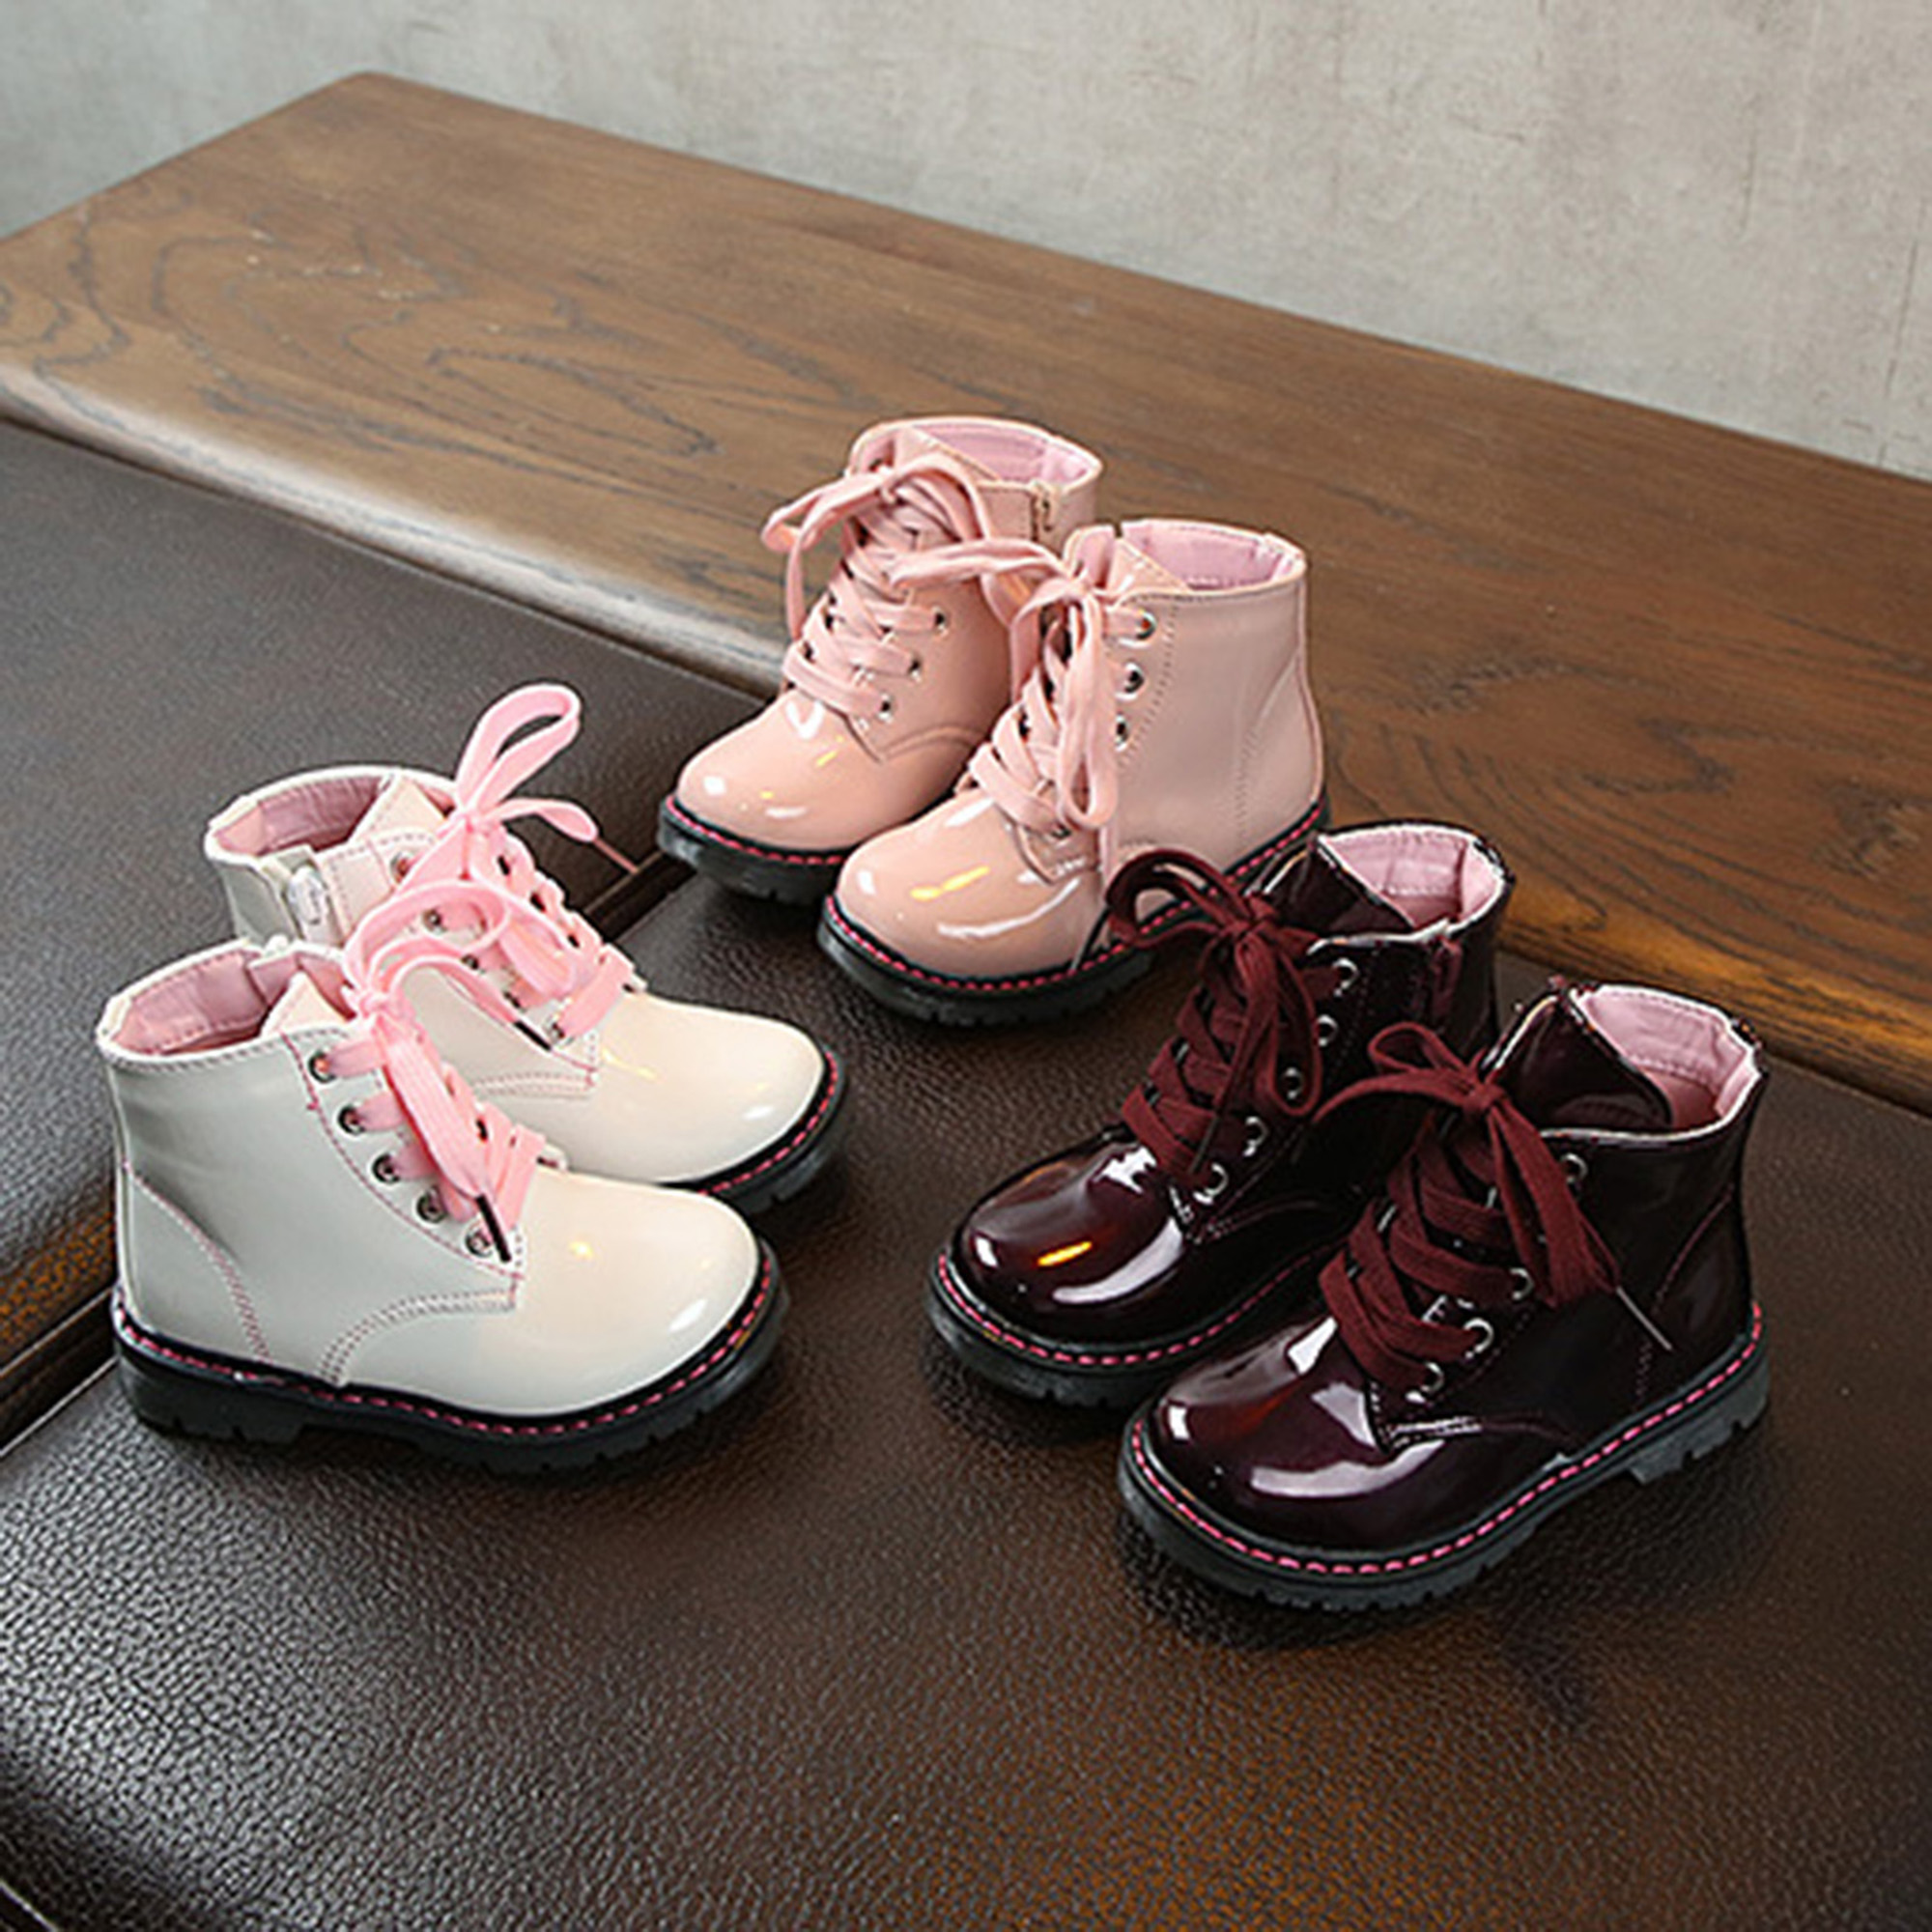 Children Toddler Girls Martin Boots Fashion Side Zipper Lace-Up PU Leather Non-Slip Ankle Boots Infant Soft Bottom Short Boots